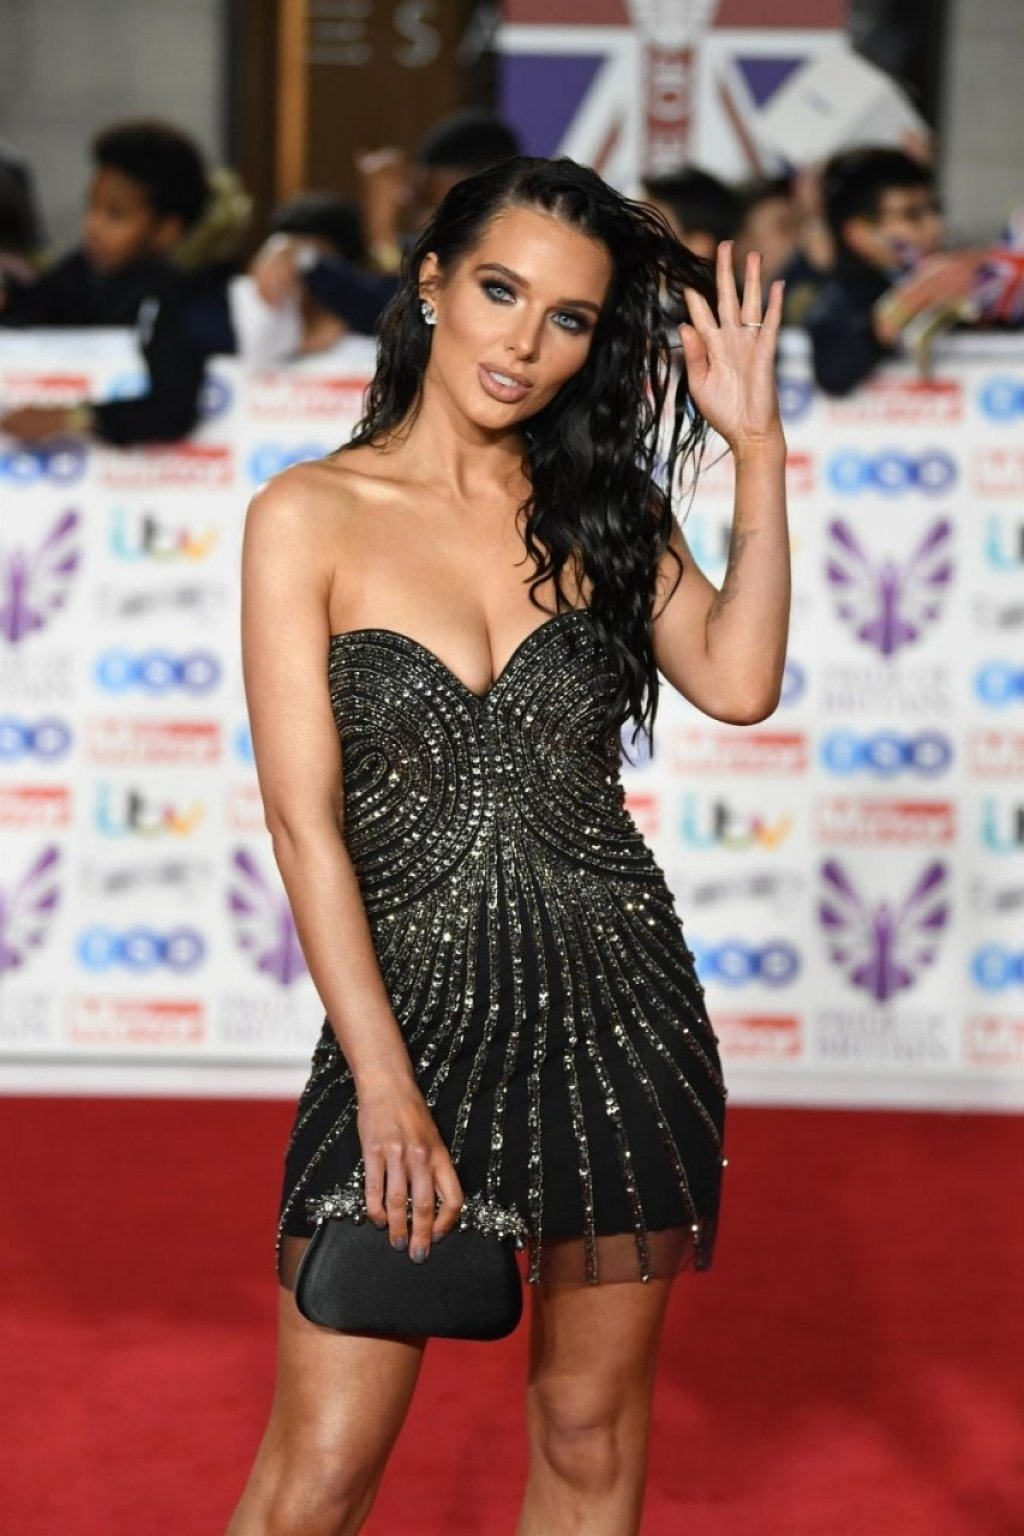 Helen Flanagan Sexy (10 New Photos)